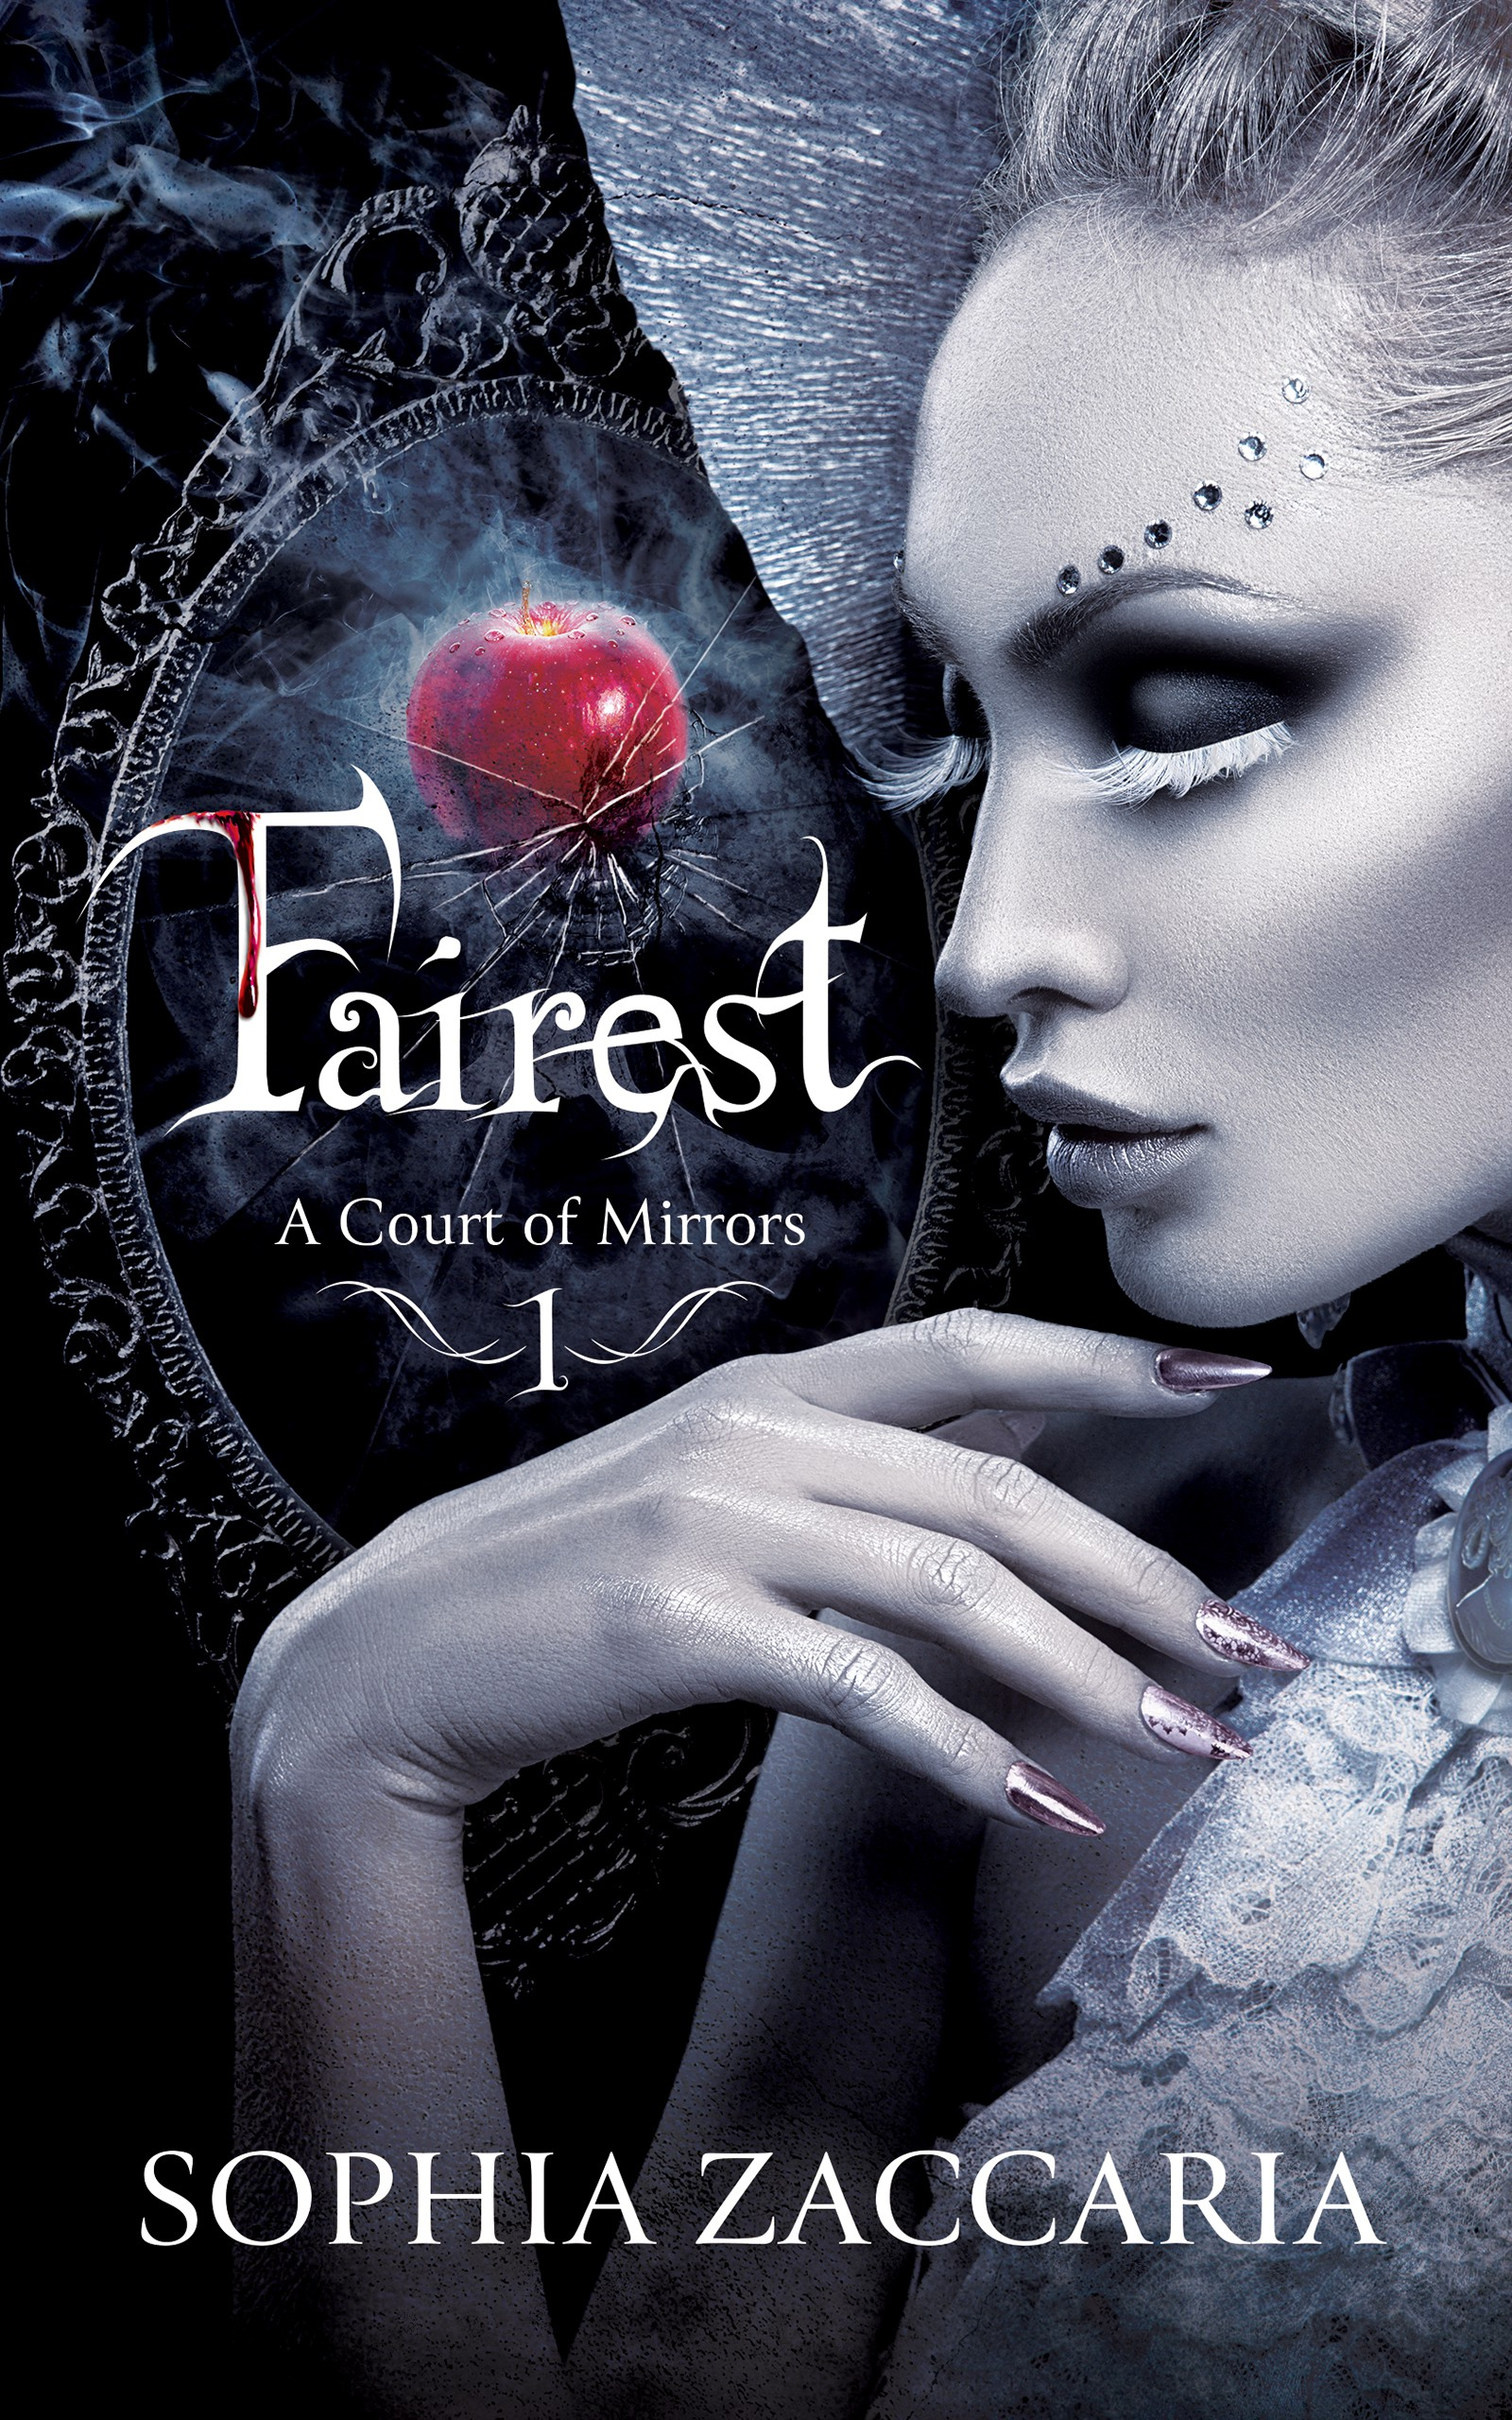 Bookcover for Fairest